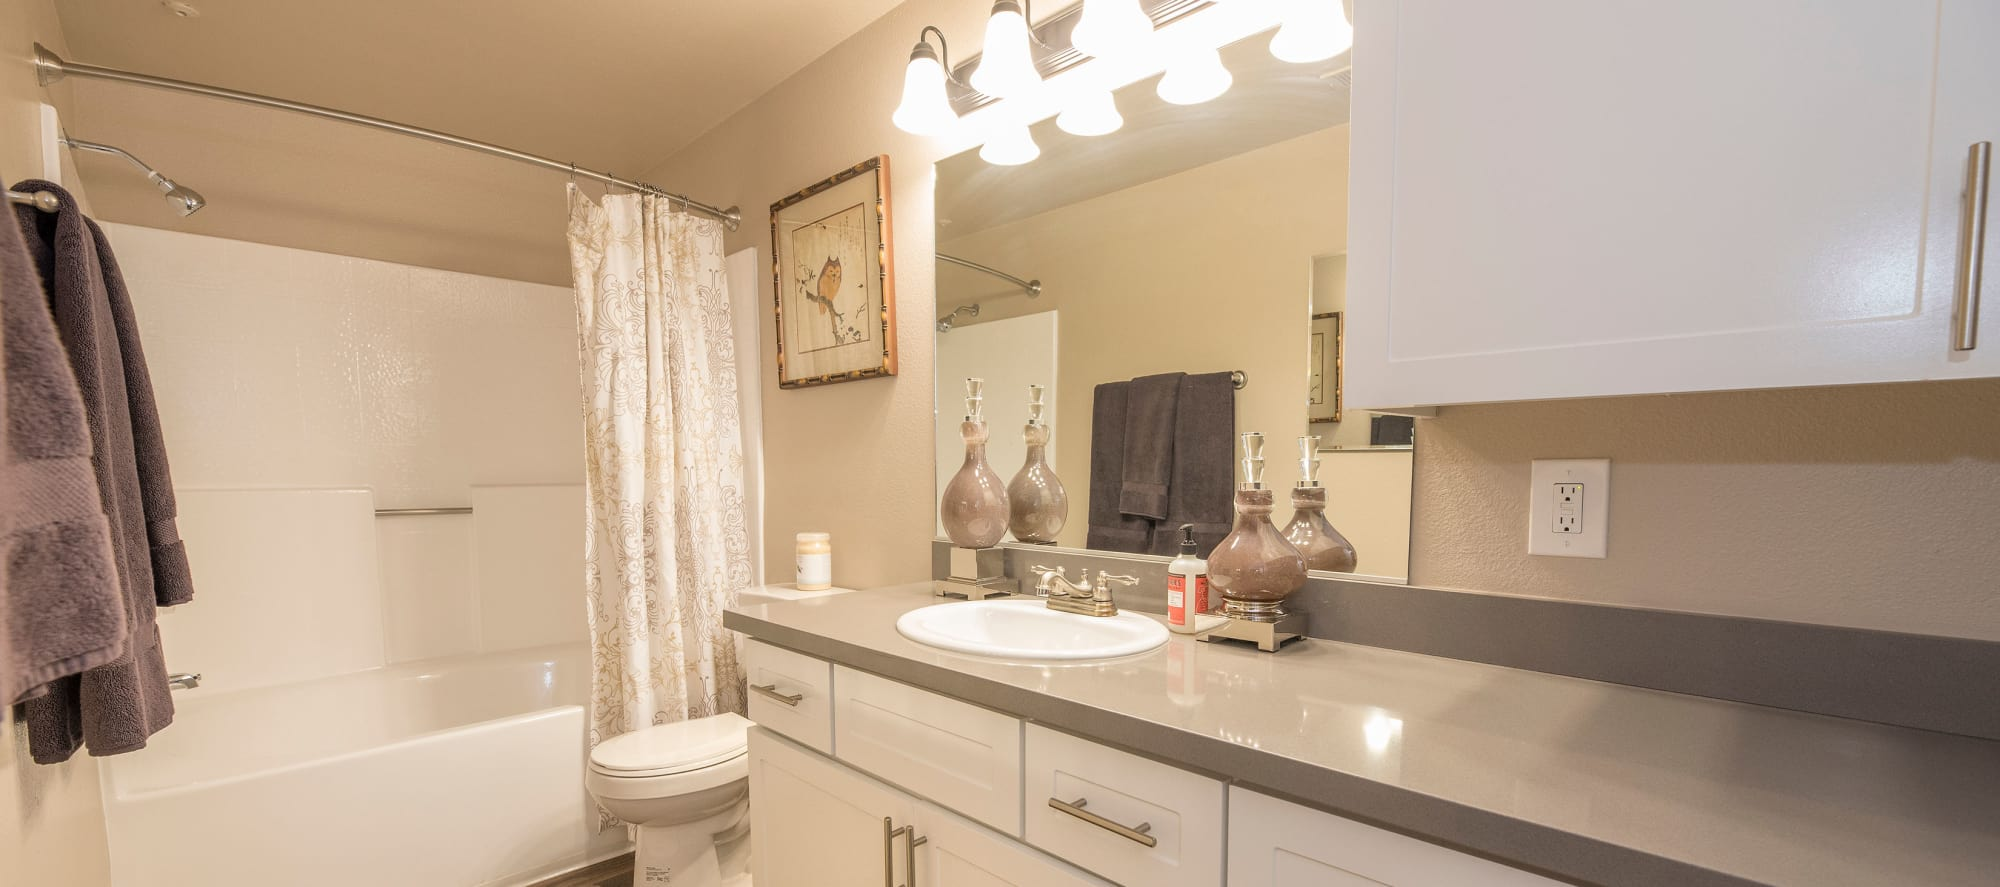 Updated bathrooms at Paloma Summit Condos